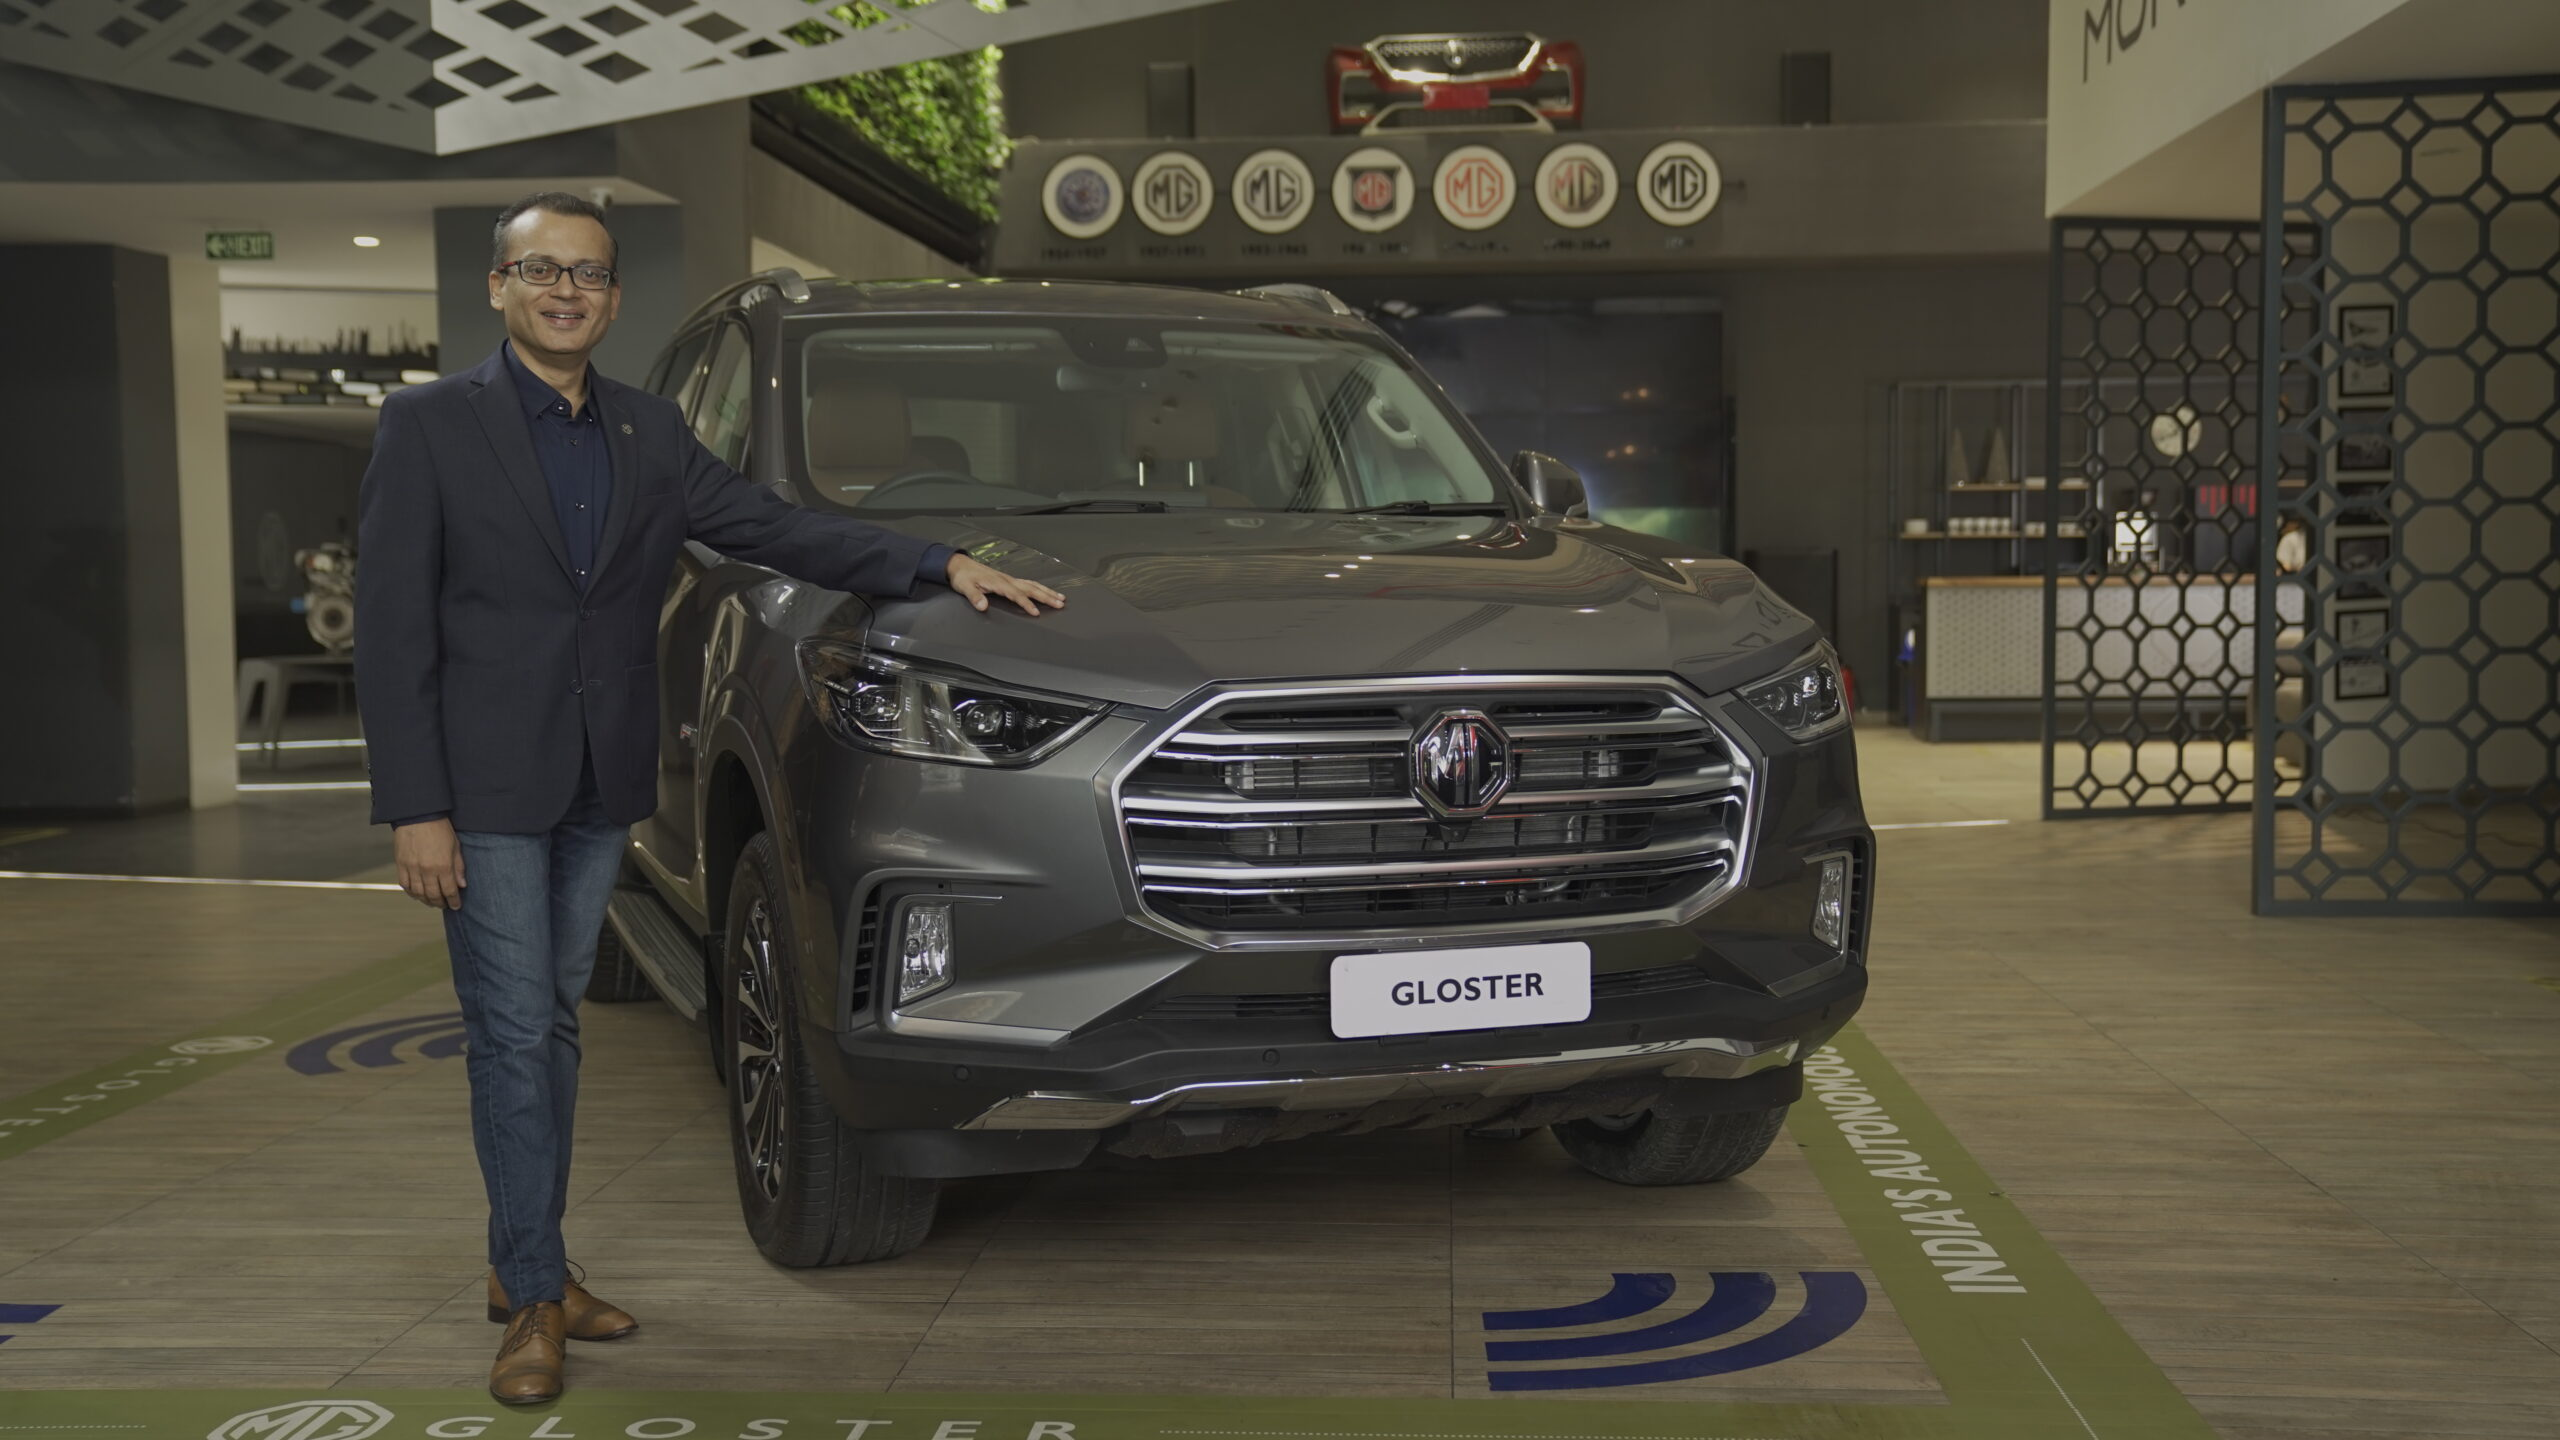 MG Motor launches 7-seater Gloster